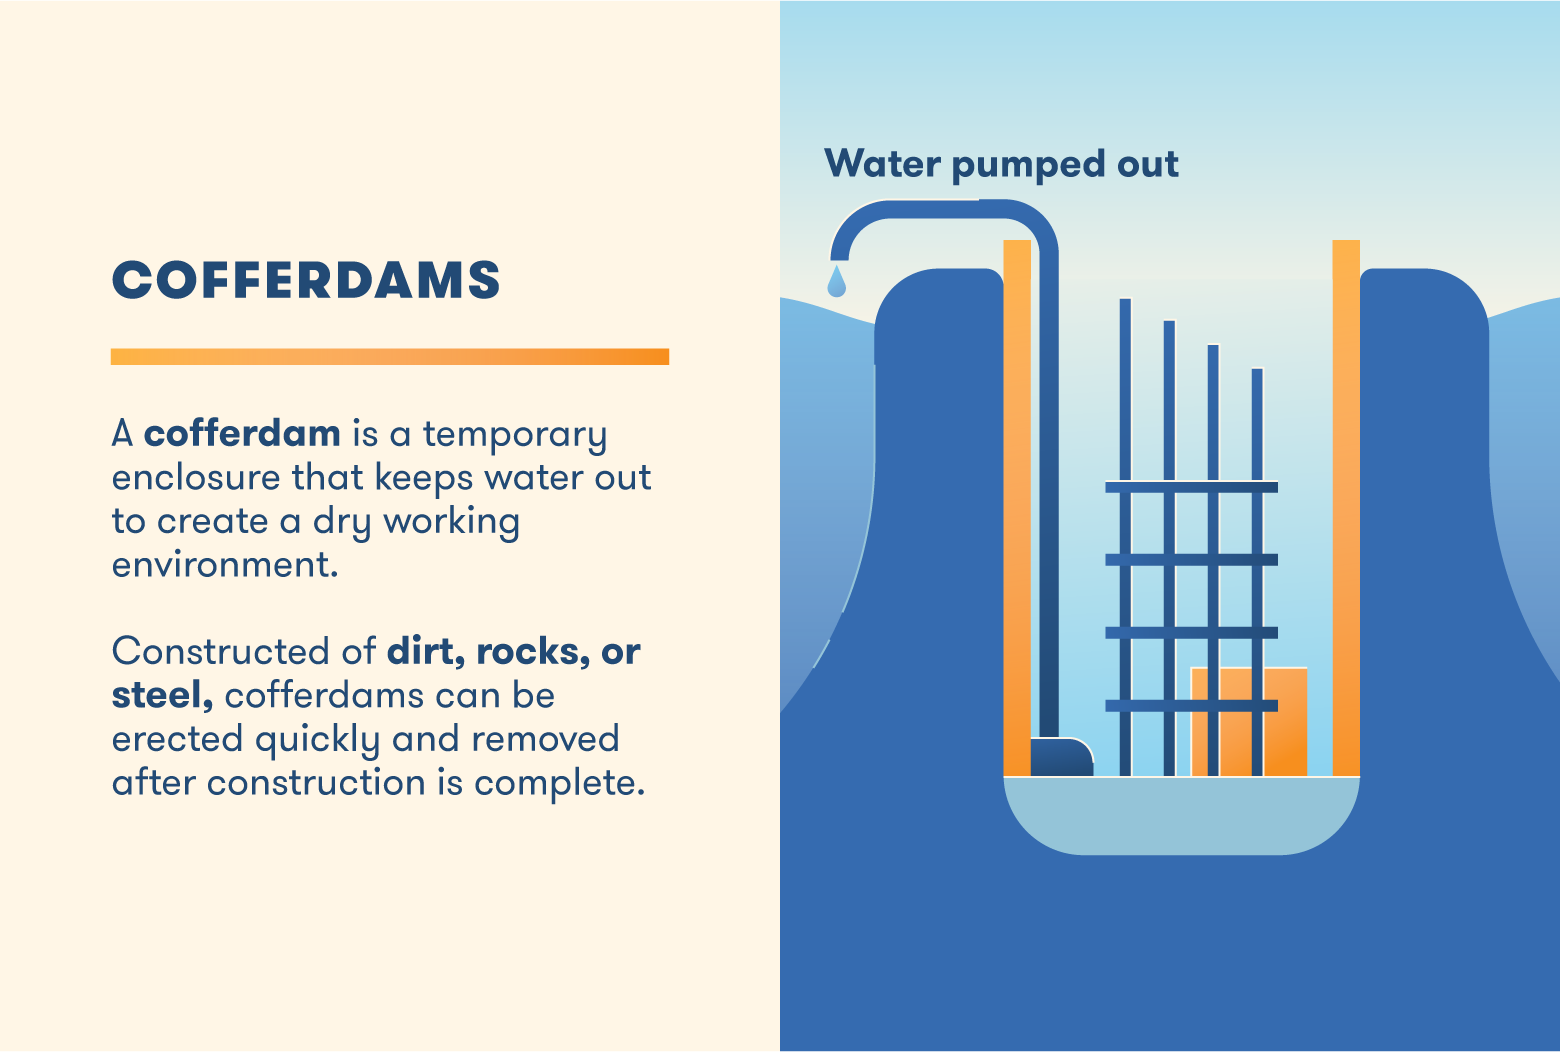 Cofferdams are temporary enclosures that keep water out of an environment during construction.